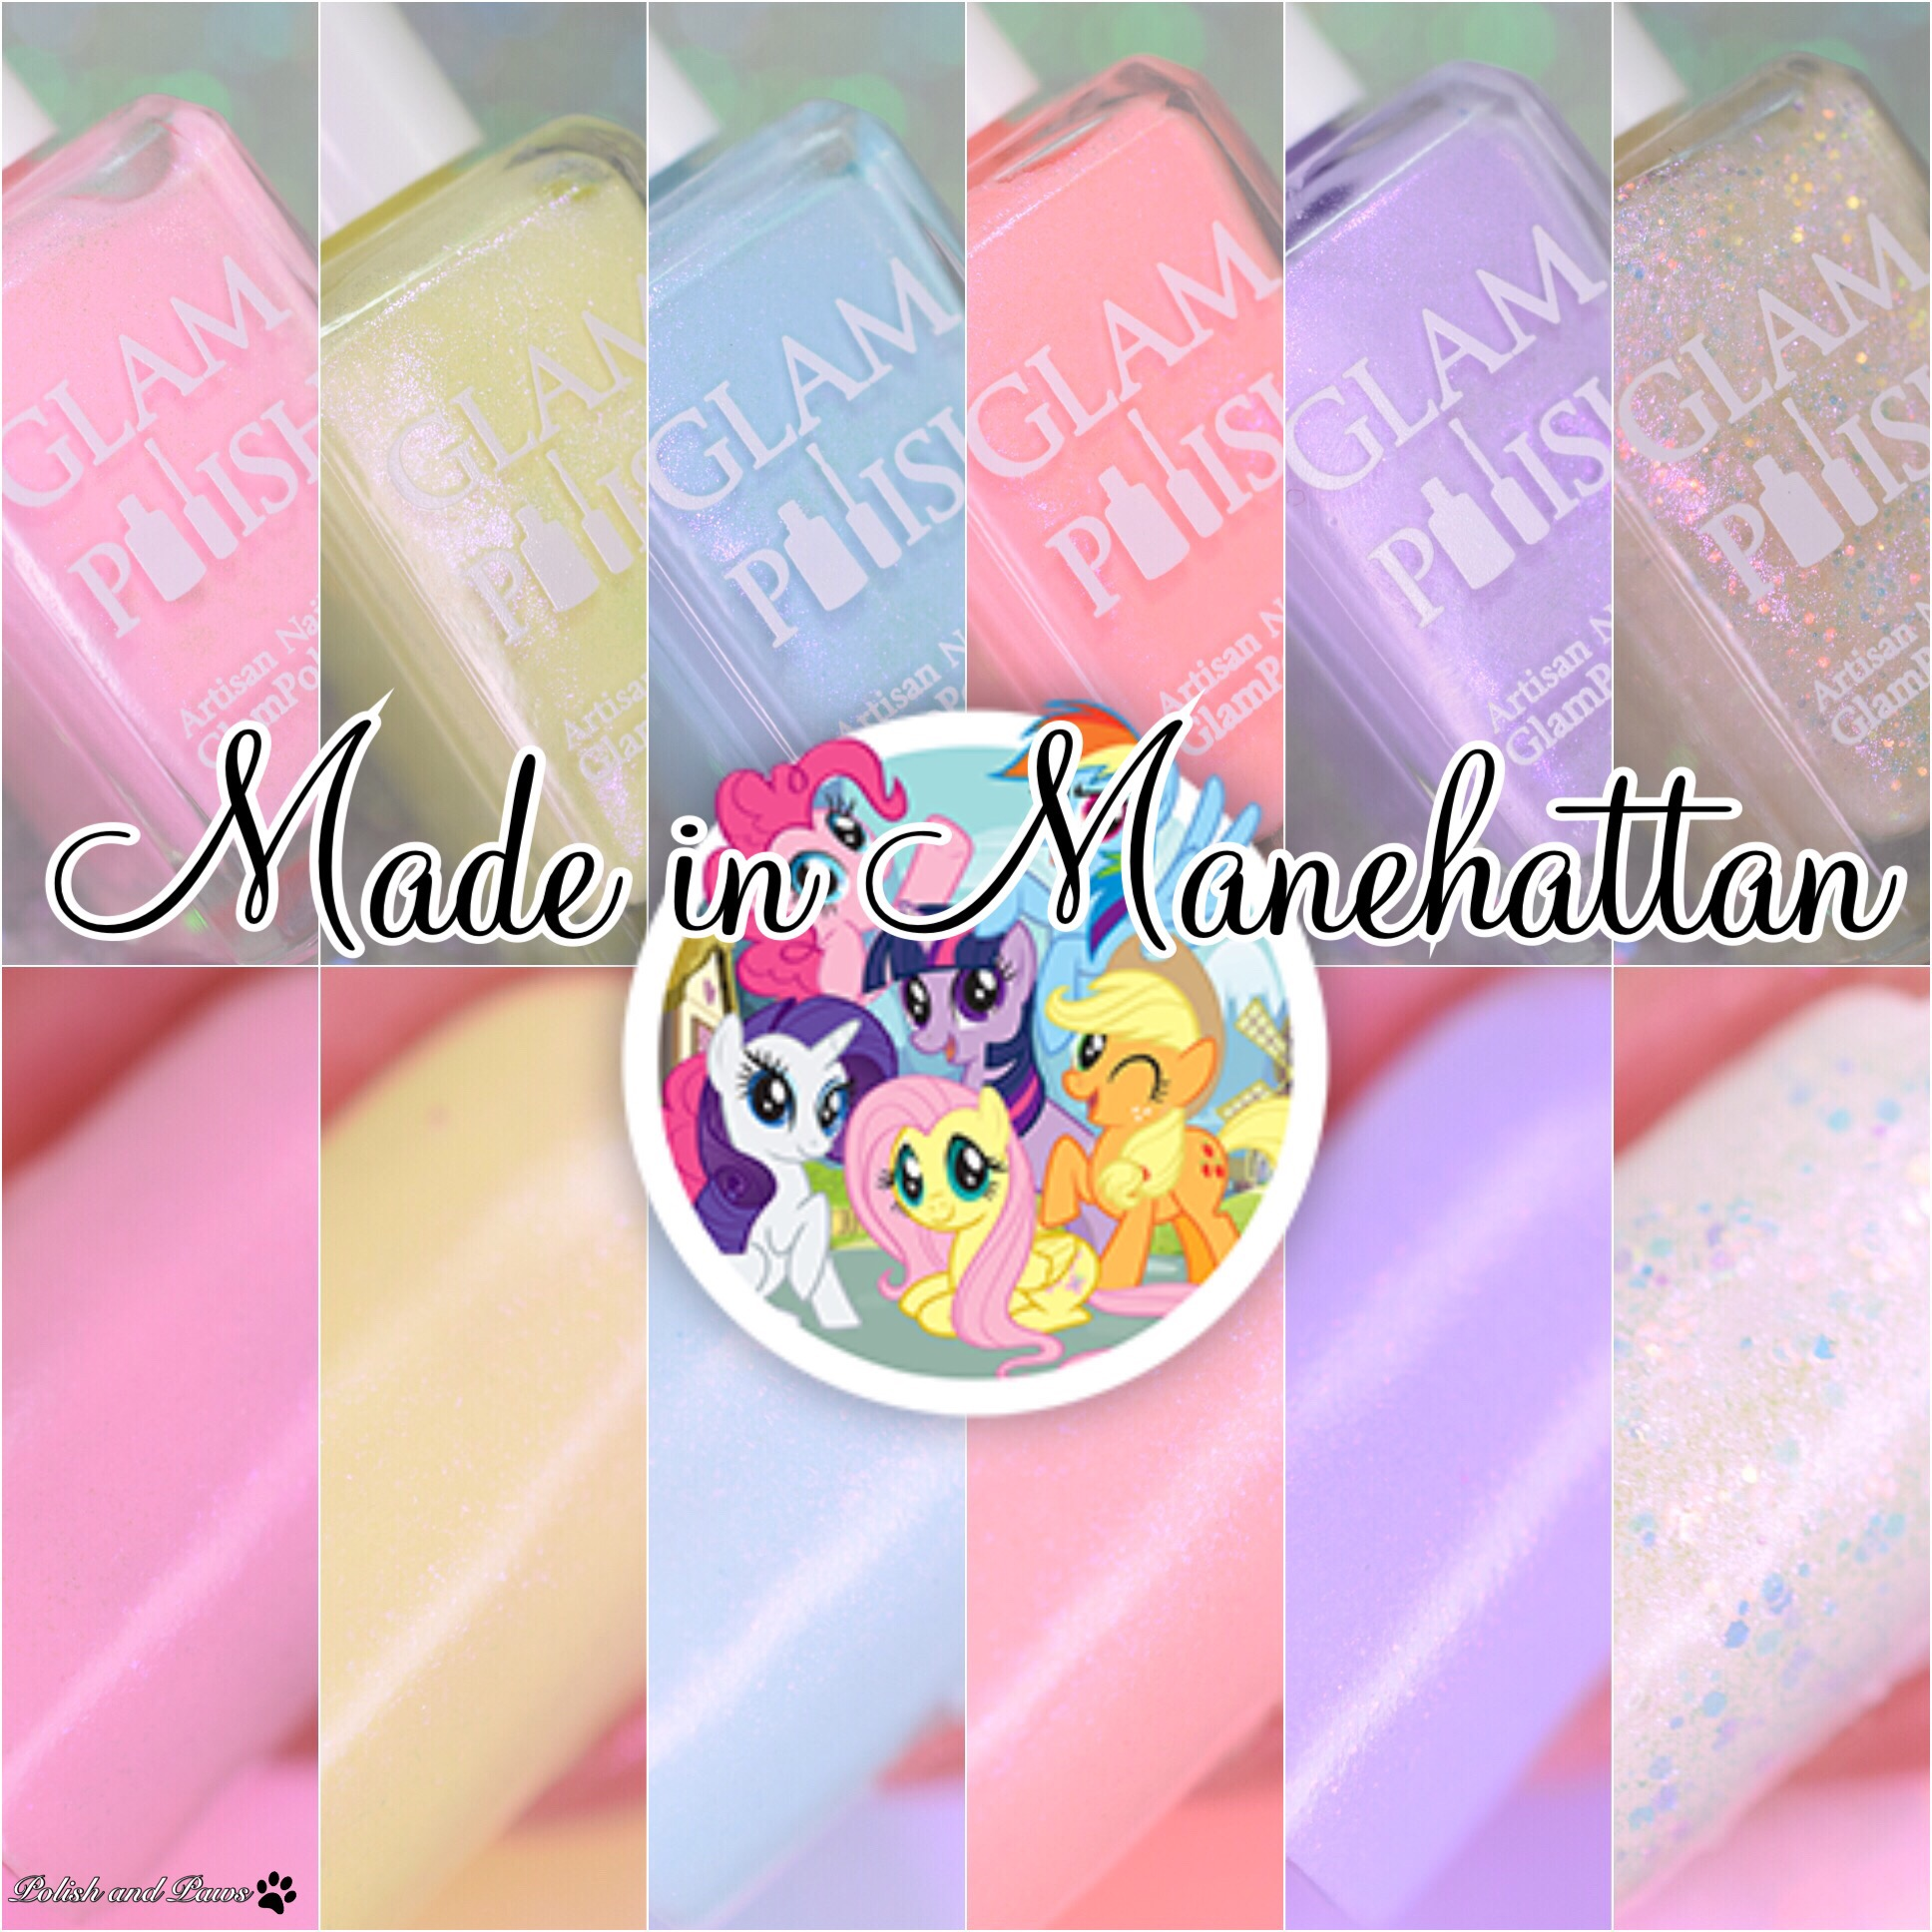 Glam Polish Made in Manehattan Collection